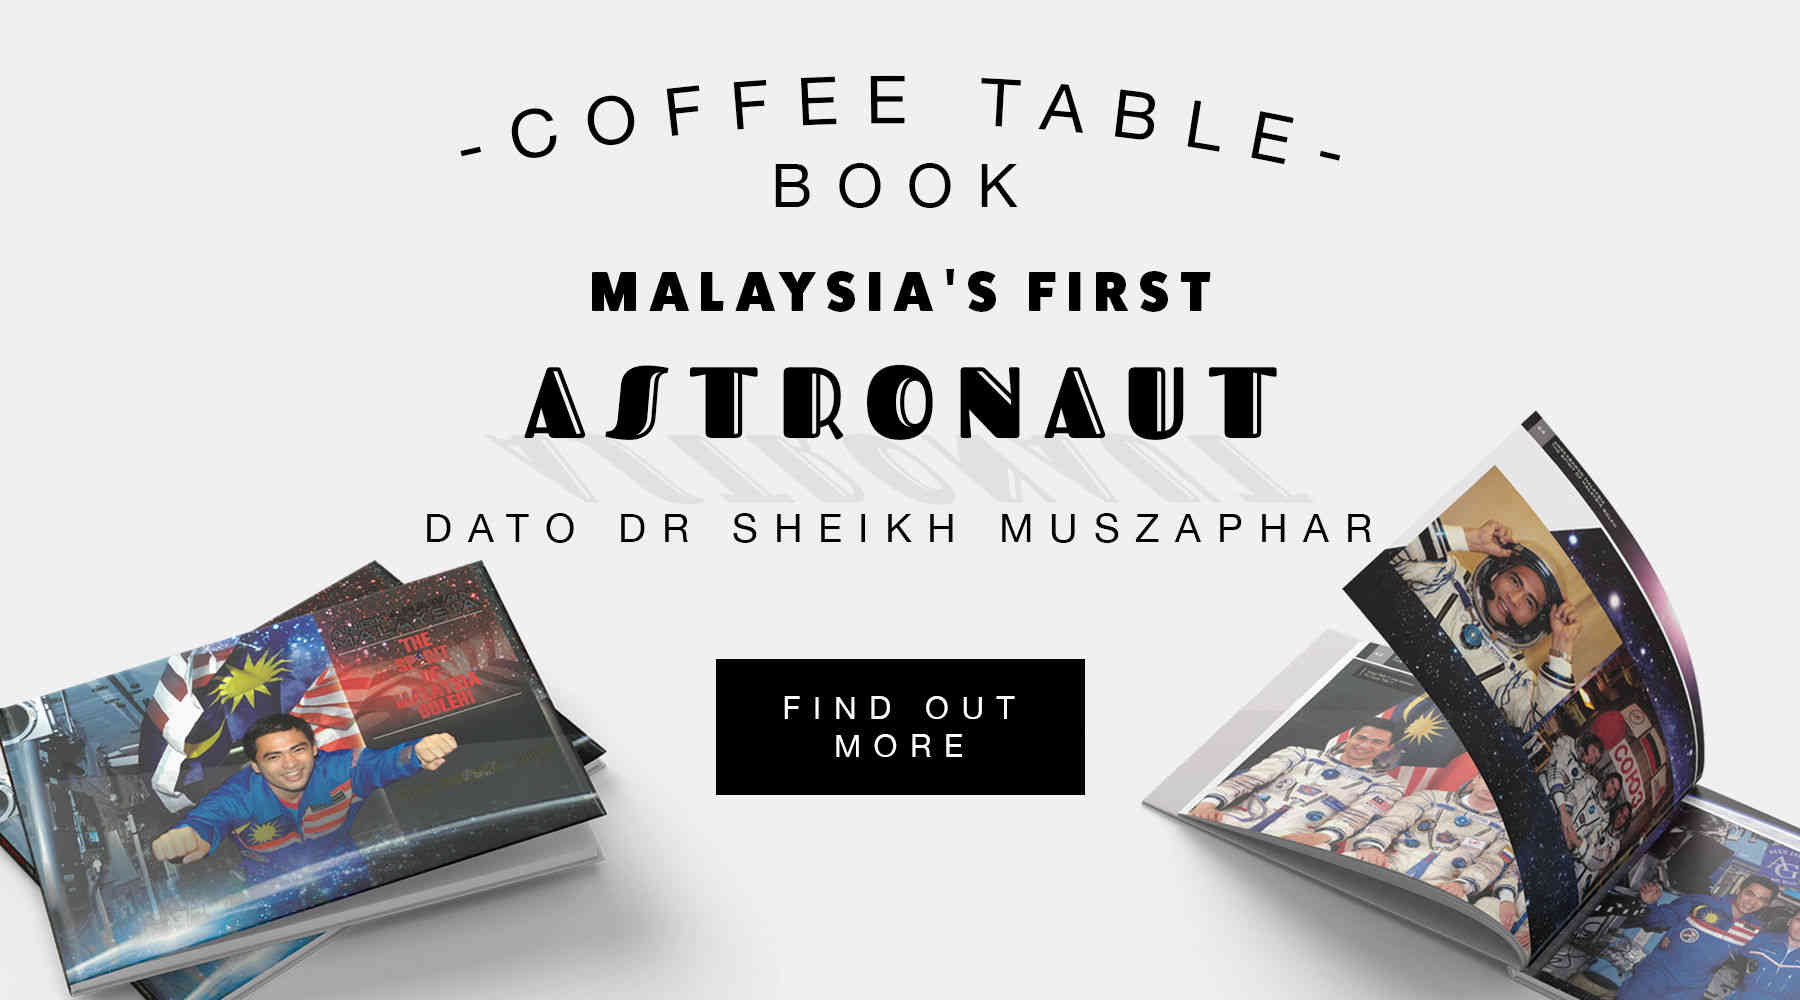 Dato' Dr Sheikh Muszaphar Shukor's Coffee Table Book